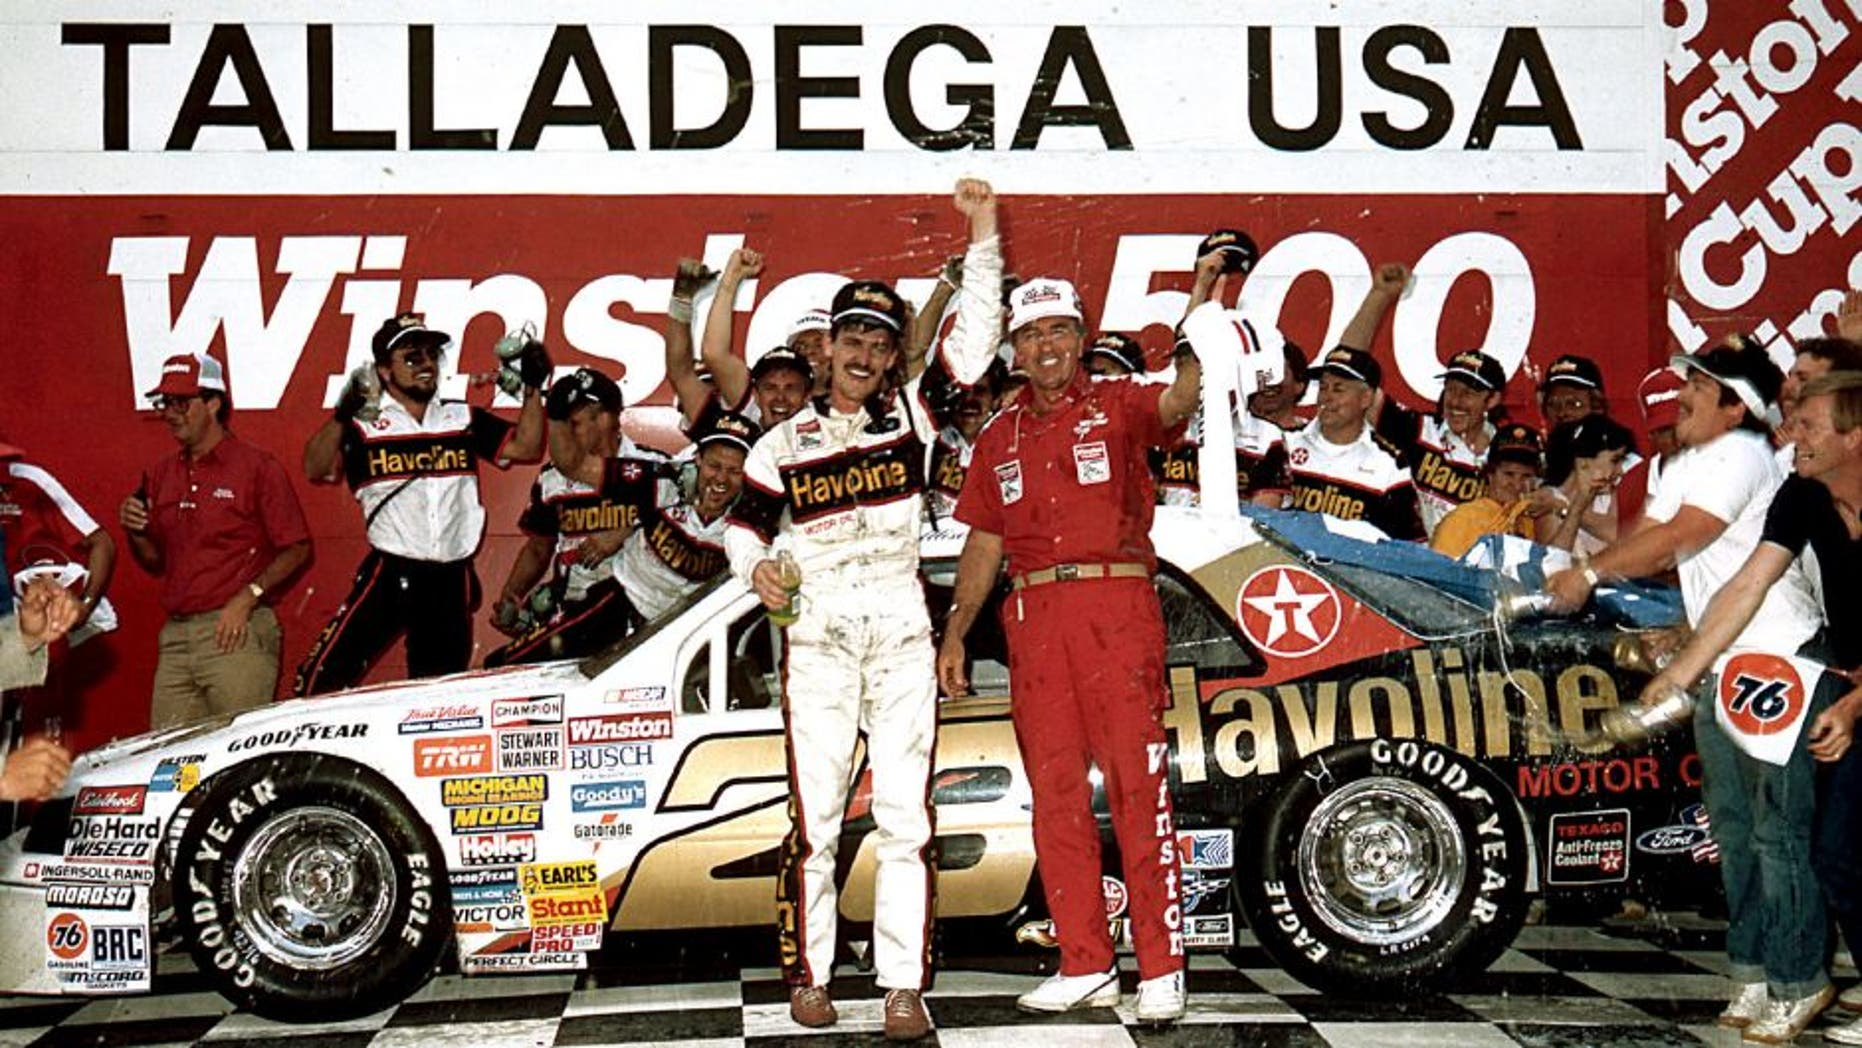 TALLADEGA, AL - MAY 3, 1987: Davey Allison and his crew celebrate in victory lane following their win in the Winston 500 at Alabama International Motor Speedway. It was Allison's first career NASCAR Cup victory. (Photo by ISC Images & Archives via Getty Images)